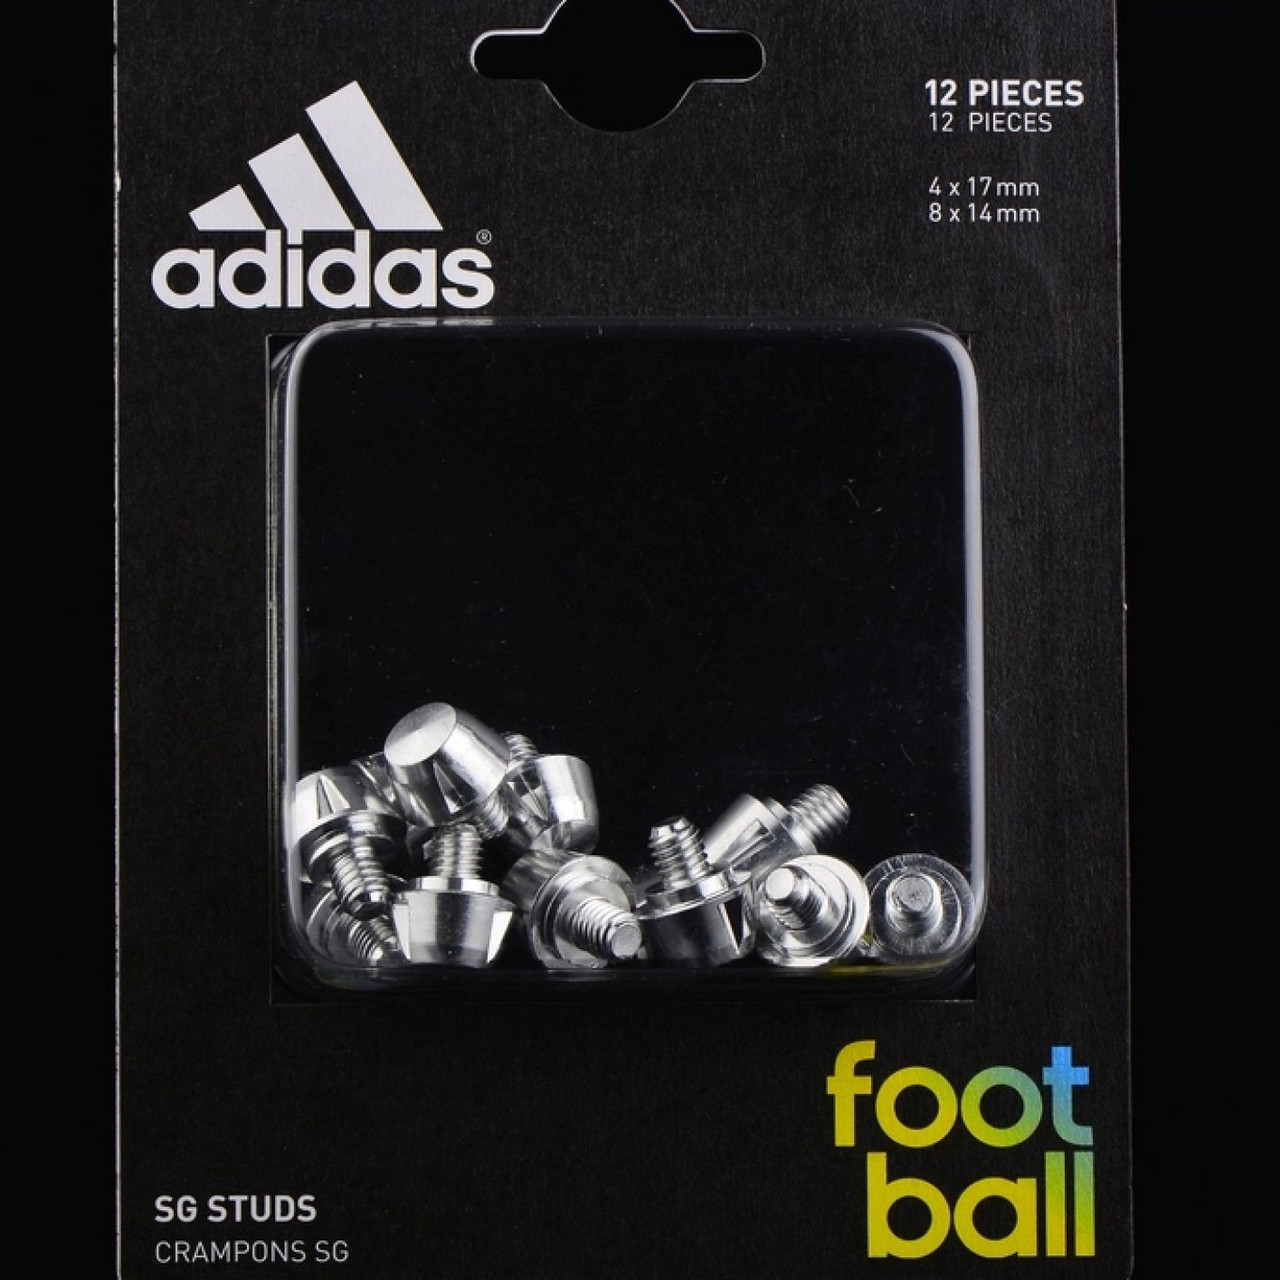 brand new b01f2 f4d1f ... shopping adidas trx 2.0 sg studs football sale.ua dca6d 66e18